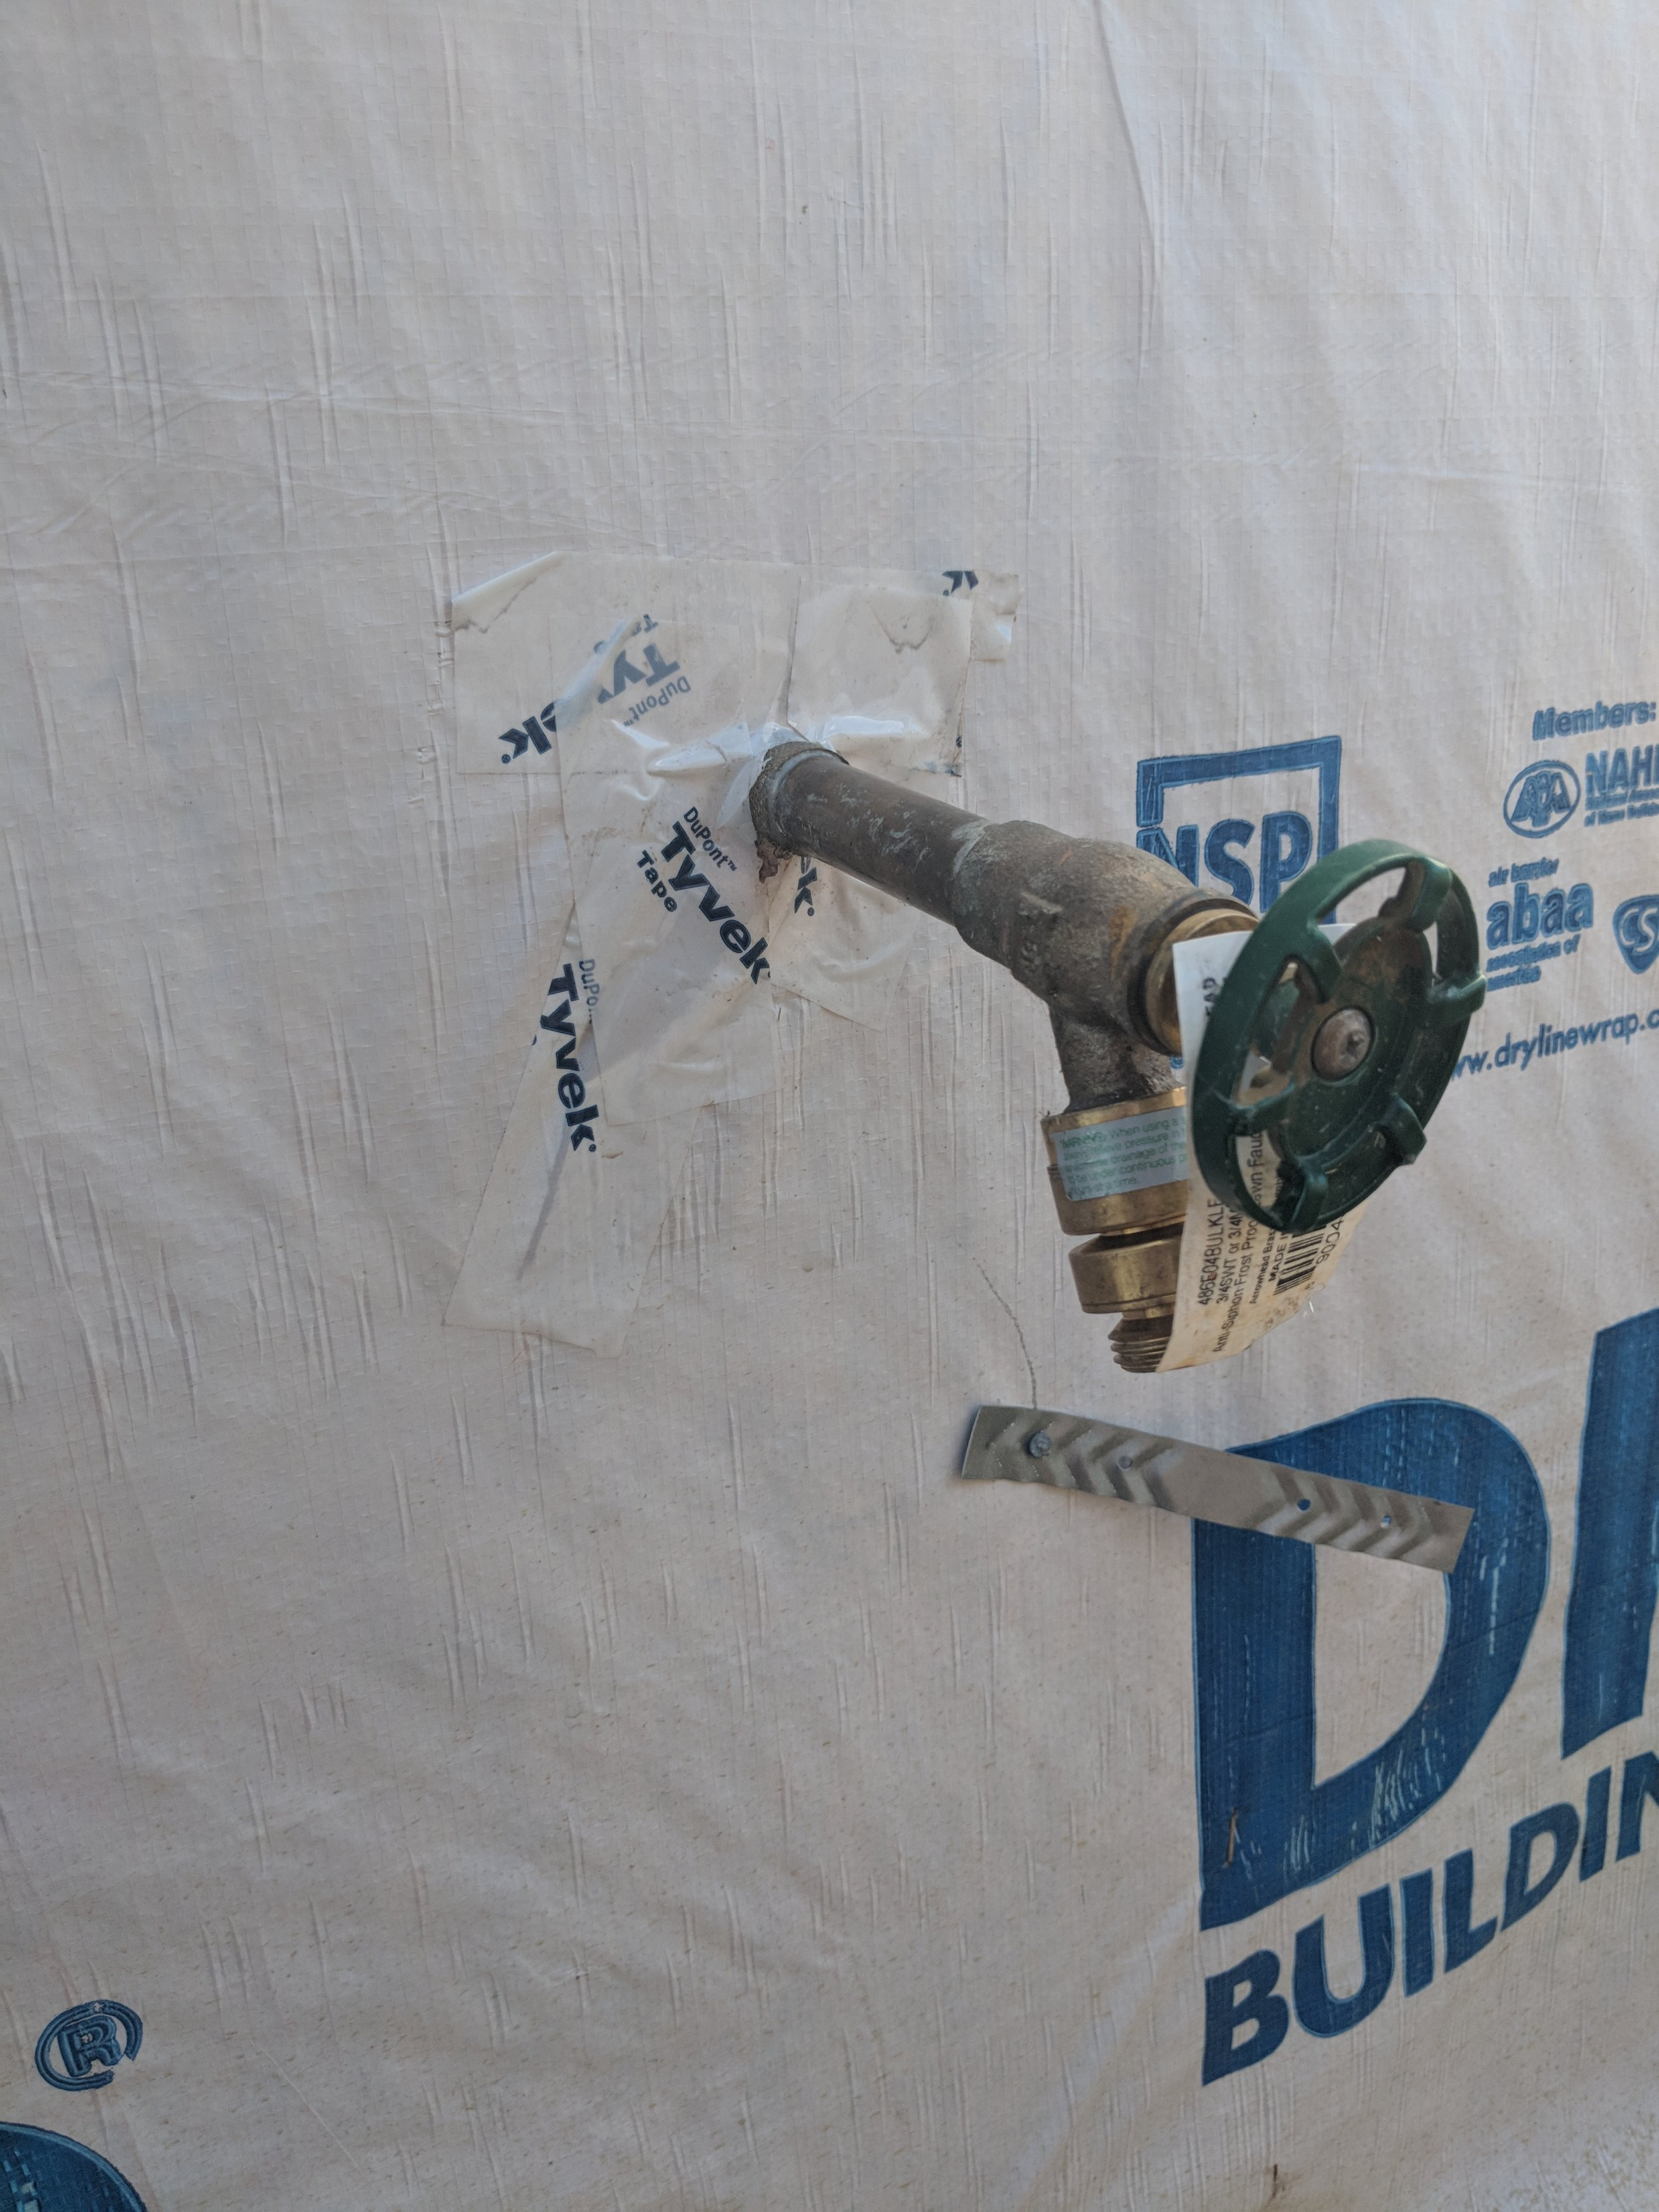 This is not our job site. But this is a typical flashing job on a through-wall pipe. How durable do you think that tape, does it look like its making good contact with the pipe to form a tight seal? As the metal expands and contracts and the wood frame moves, does this look like a seal that will hold up?